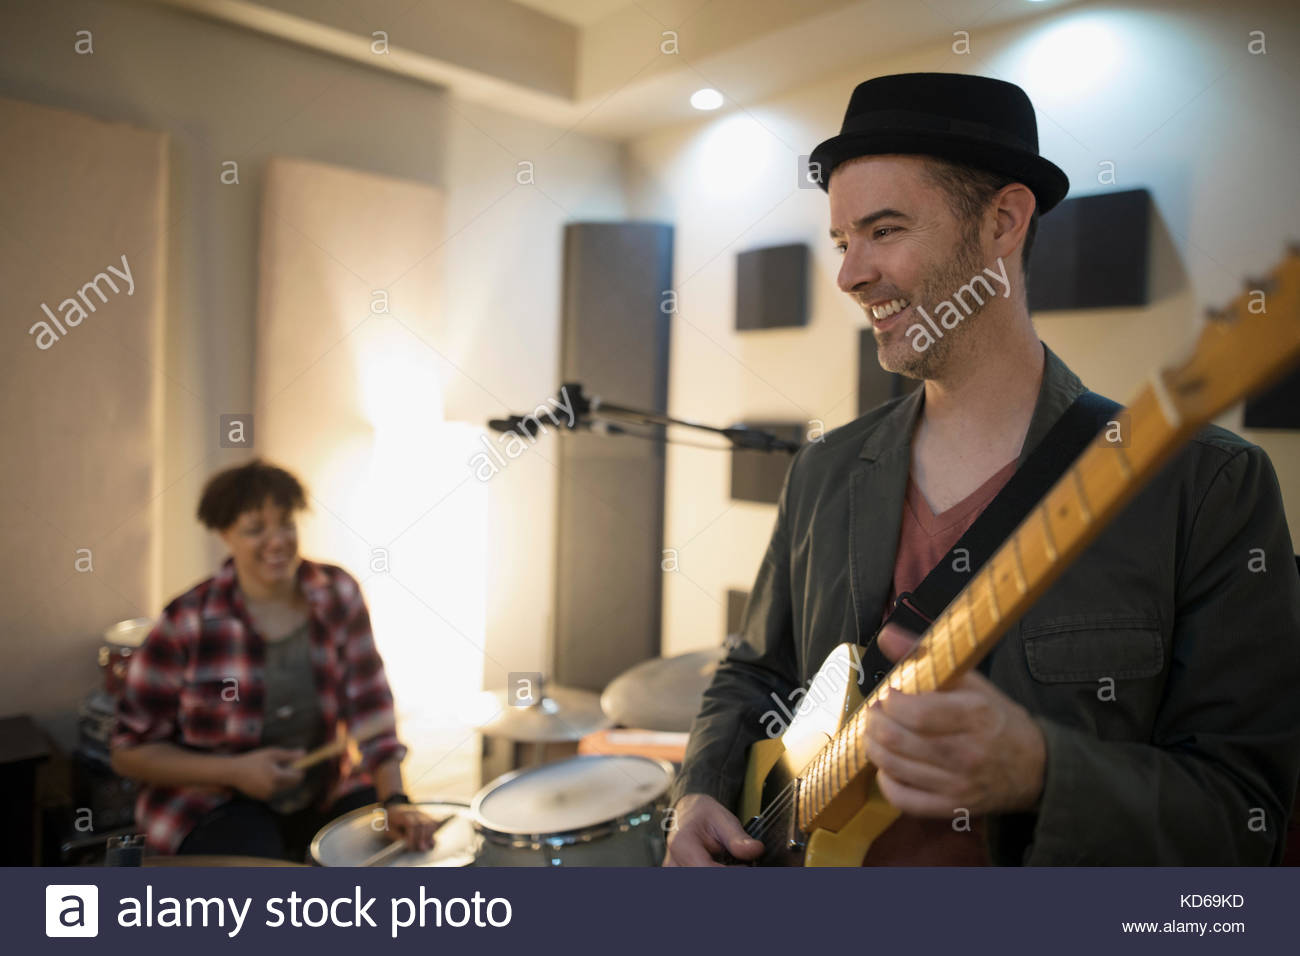 Smiling male guitarist playing in recording studio - Stock Image